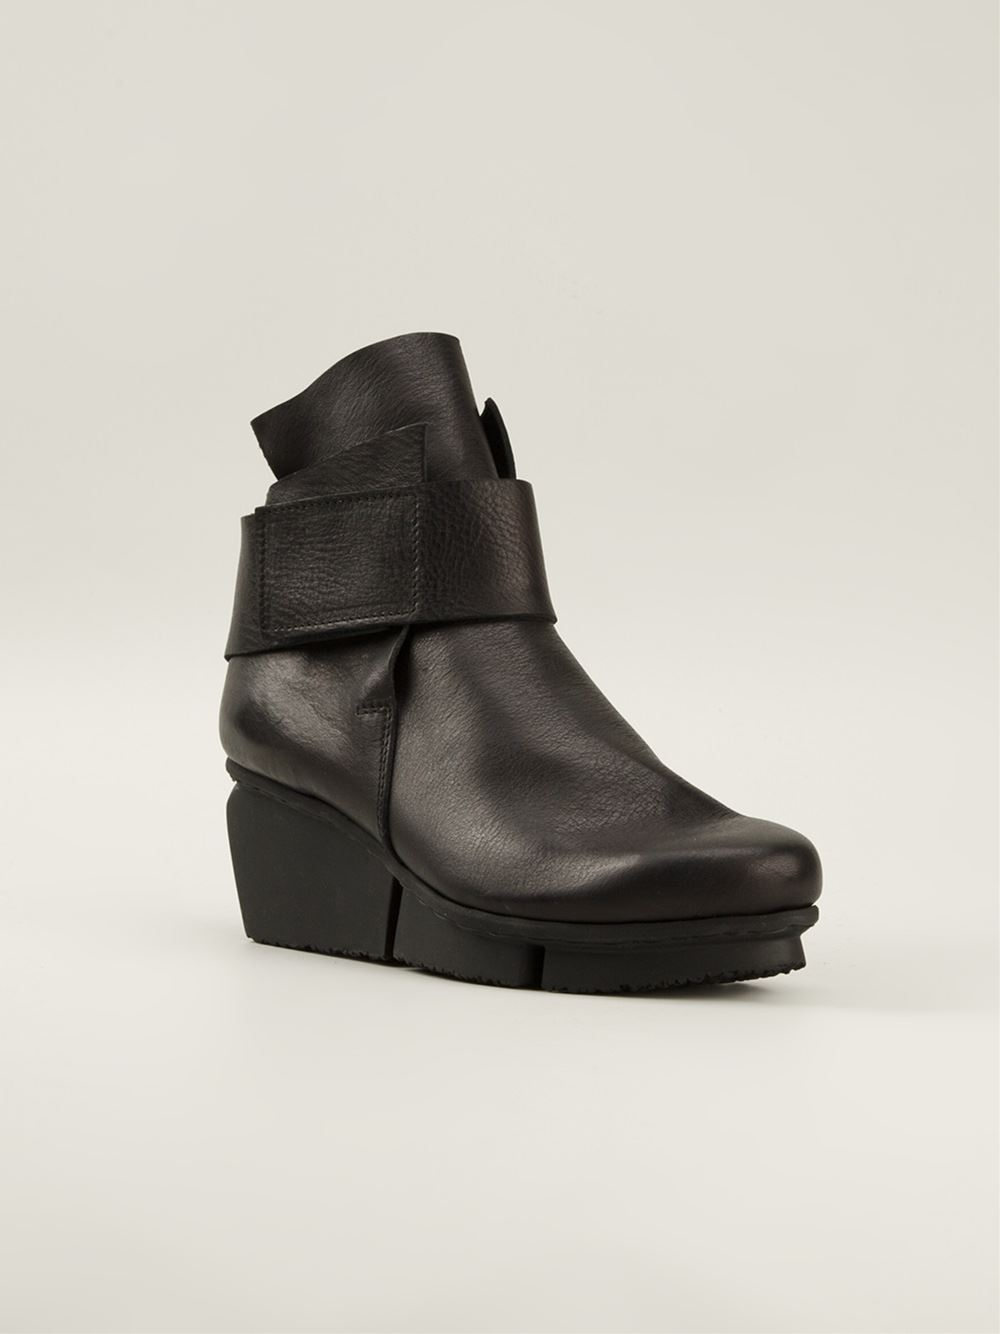 Trippen Wedge Ankle Boots in Black